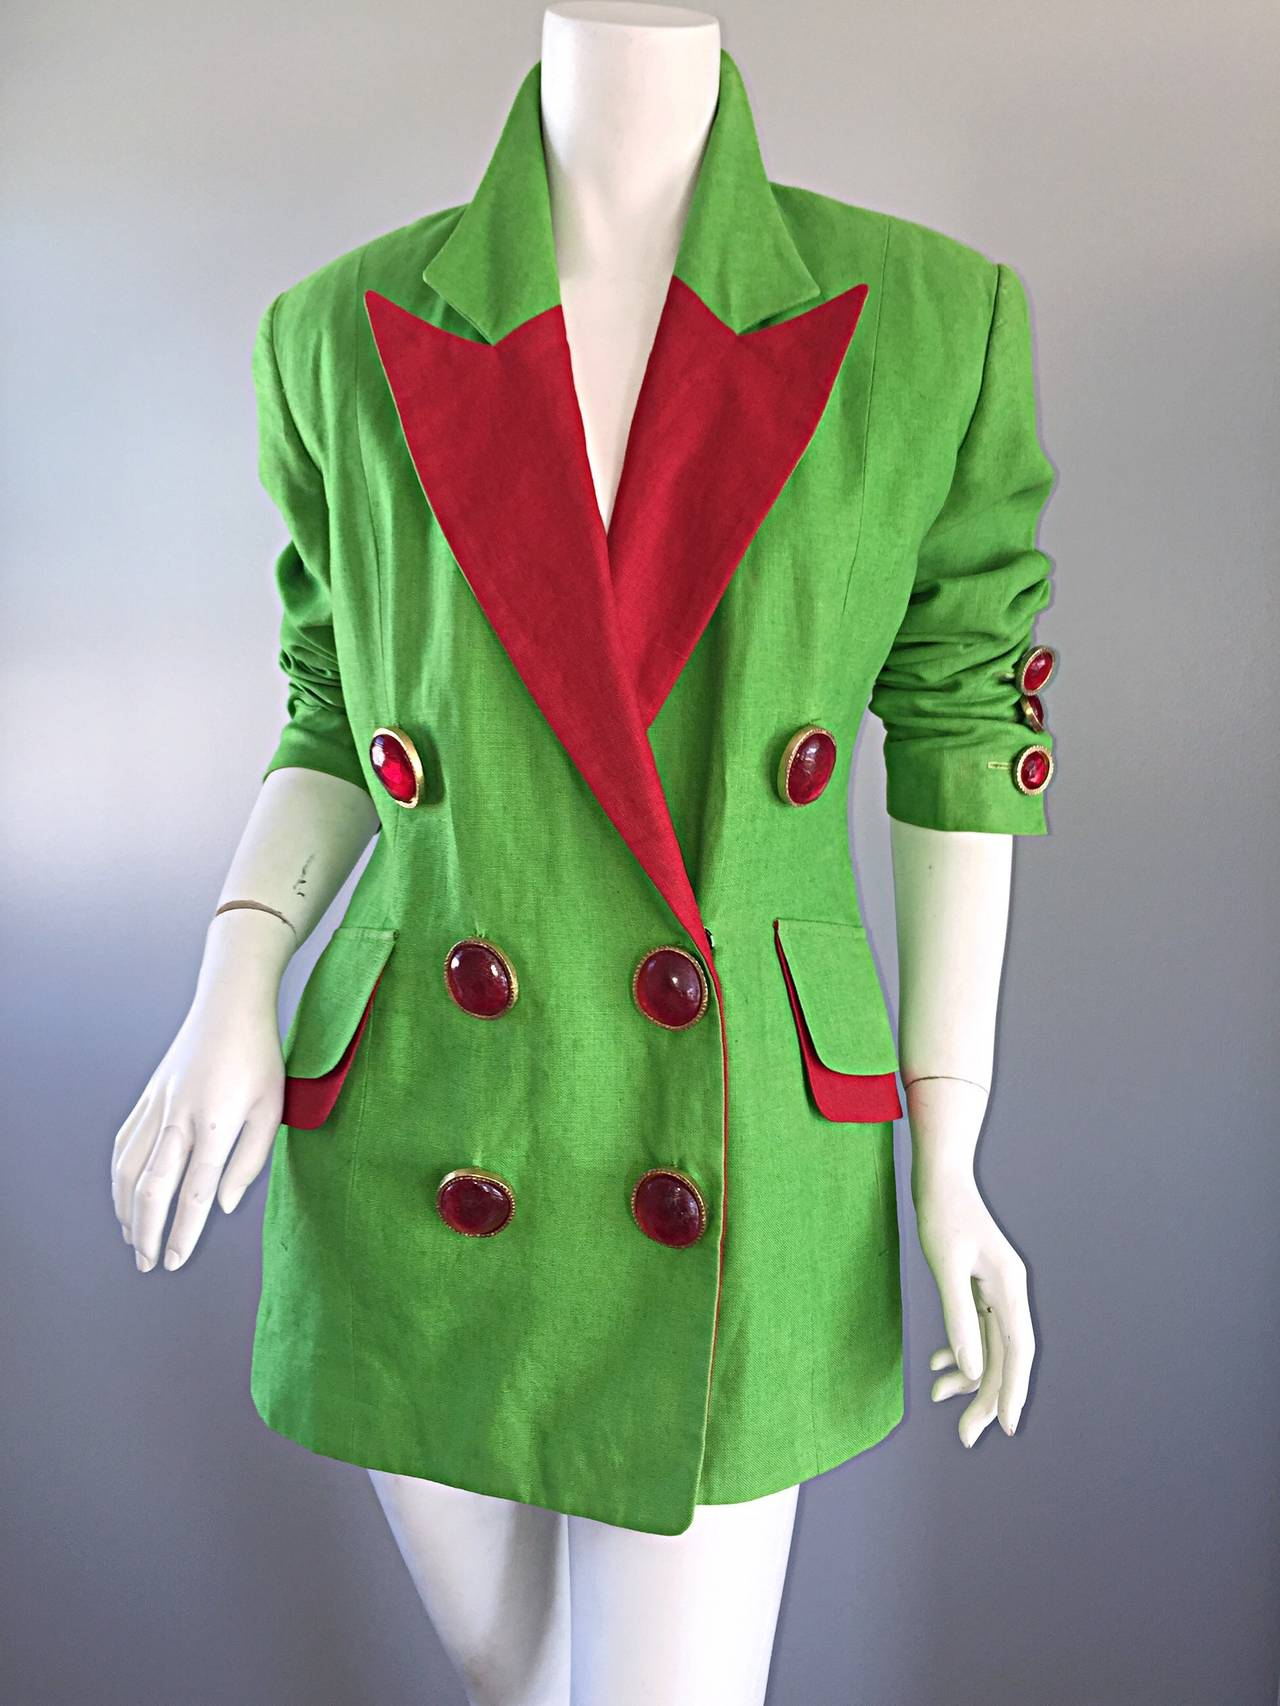 Incredible vintage Gemma Kahng avant garde blazer! Vibrant green color, with pos of red throughout! Oversized red gripoix buttons on the front, and at sleeve cuffs. Double breasted style. Large lapels. Can be worn a variety of ways. Fully lined. In